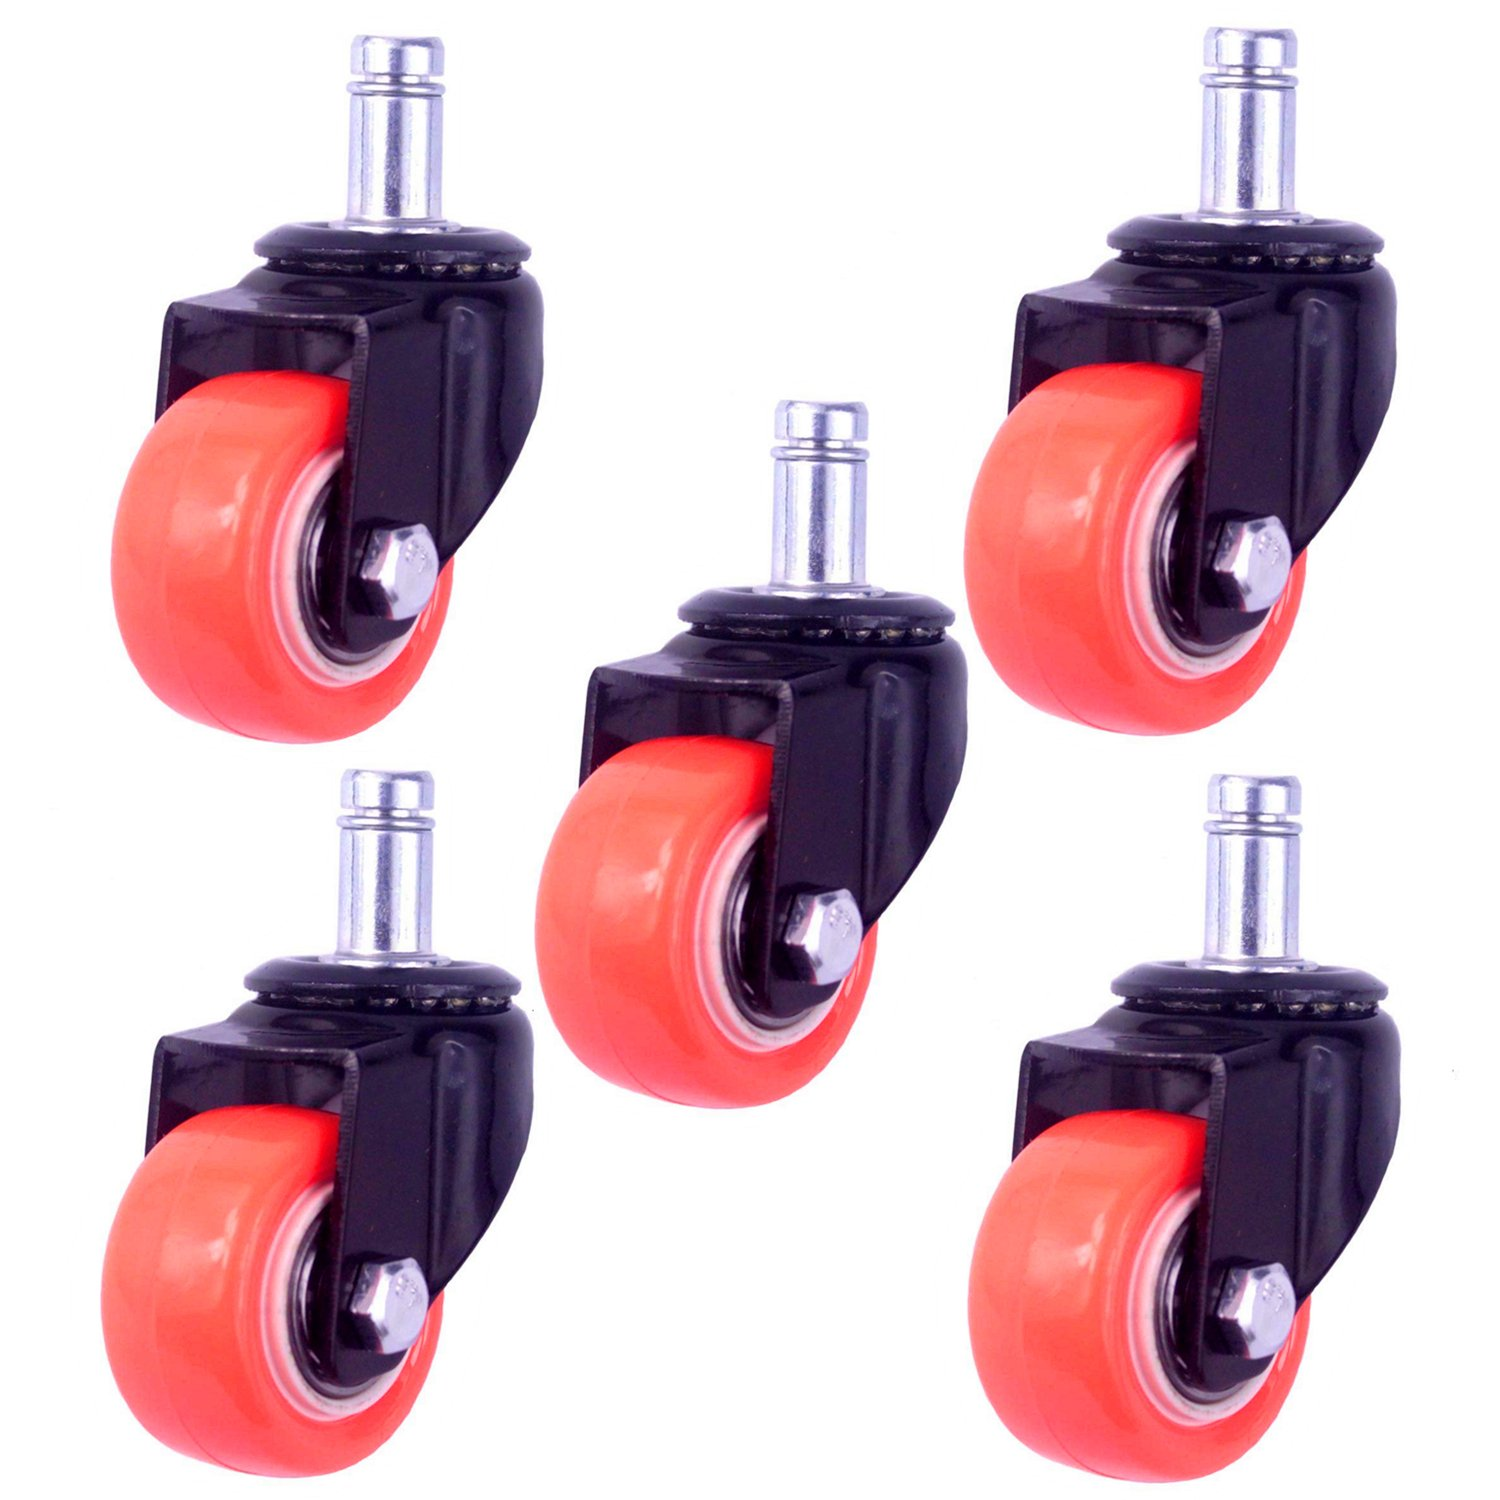 7//16x7//8 Stem Black 8T8 2 Replacement Office Chair Caster Wheels Heavy Duty Solid Rubber Safe for Hardwood Tile Floors